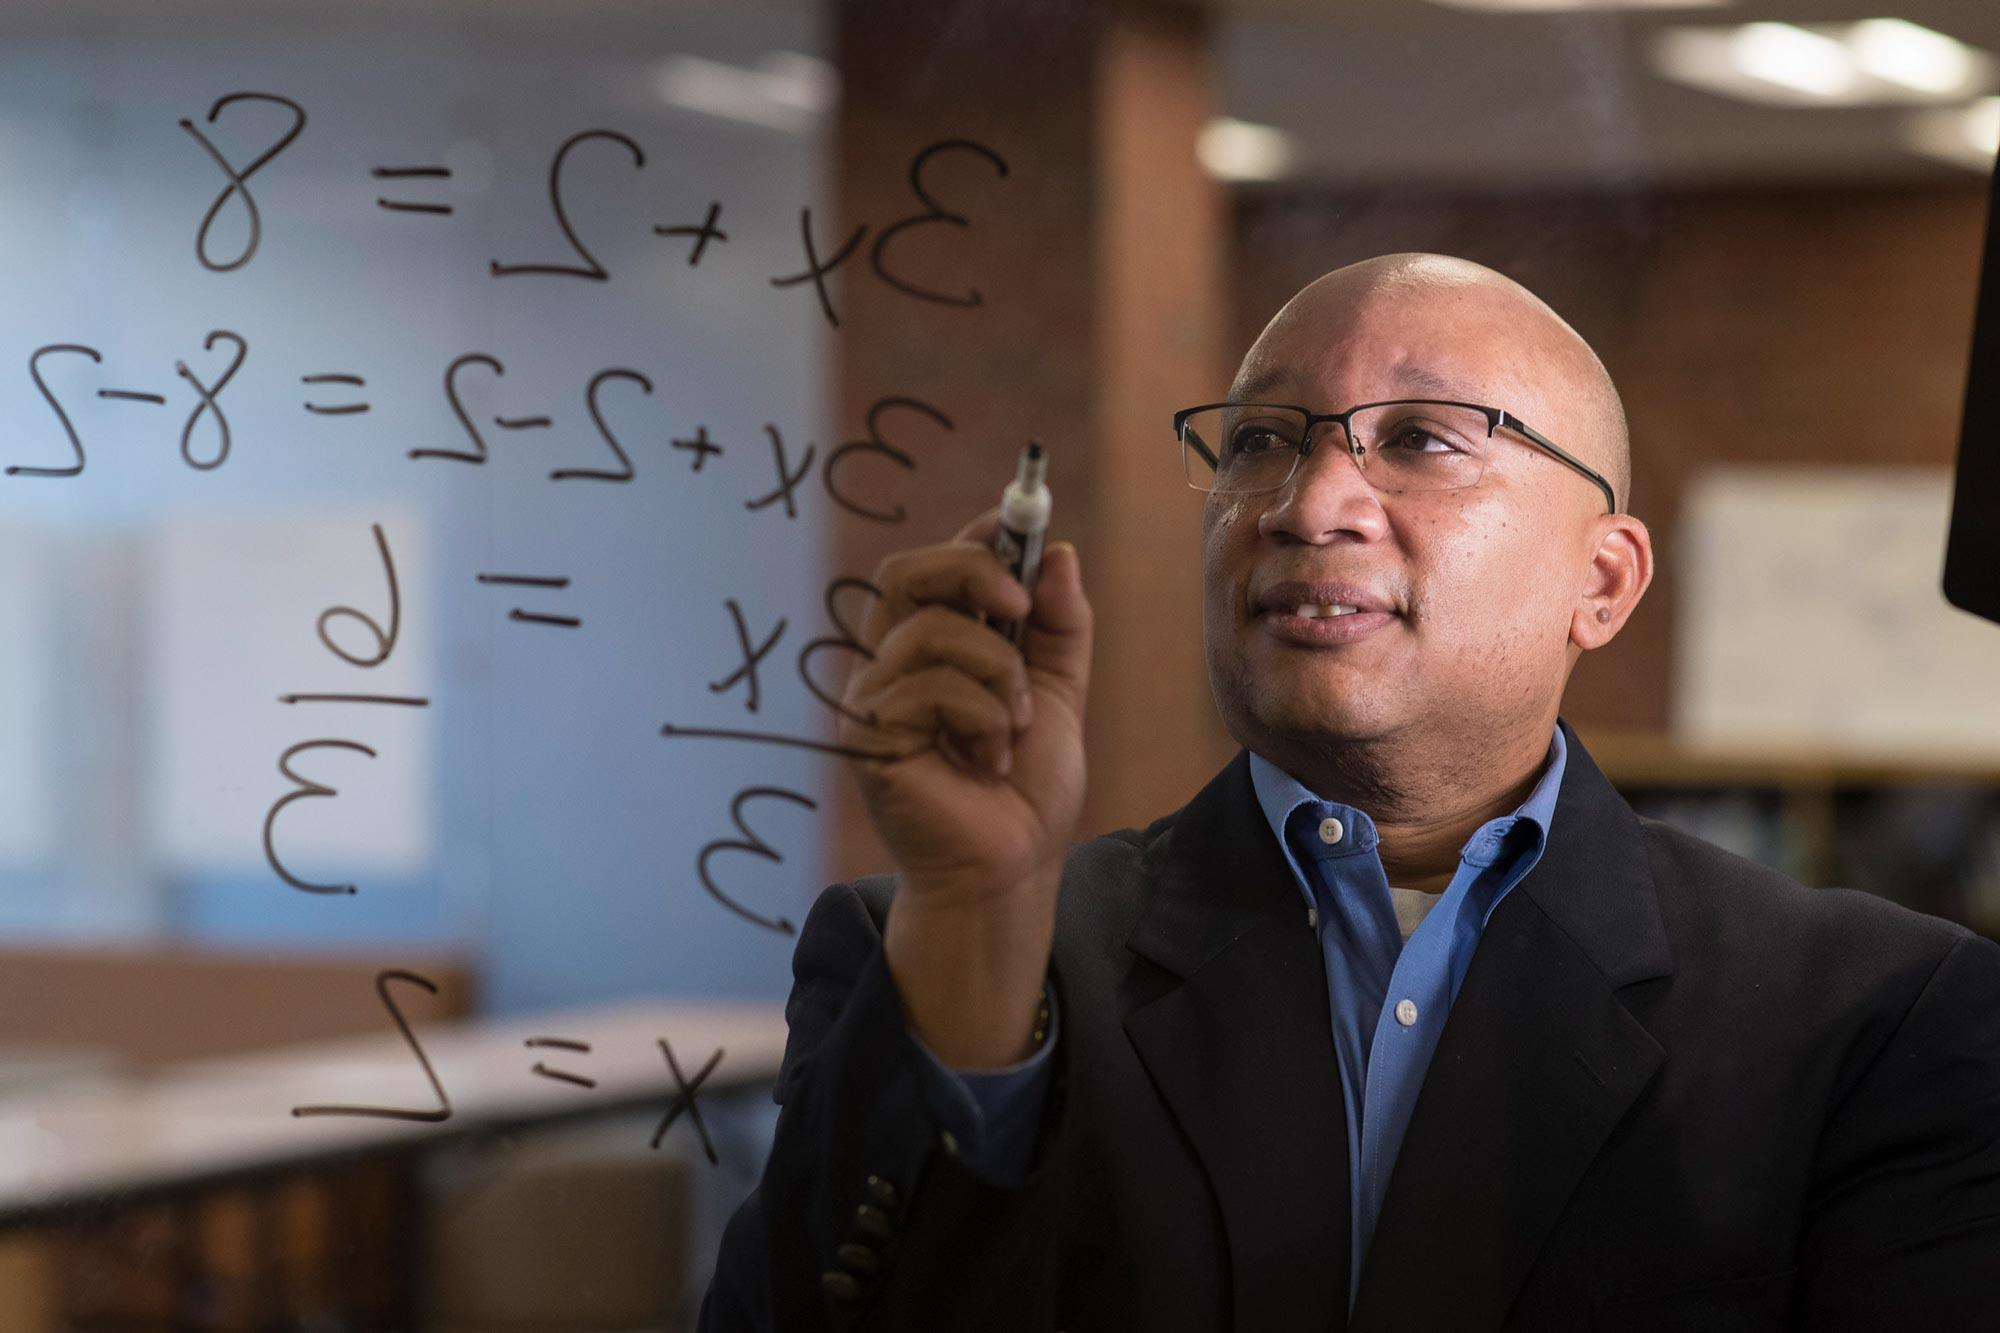 Curry School professor Robert Berry says the way math is taught has changed over the last half-century.